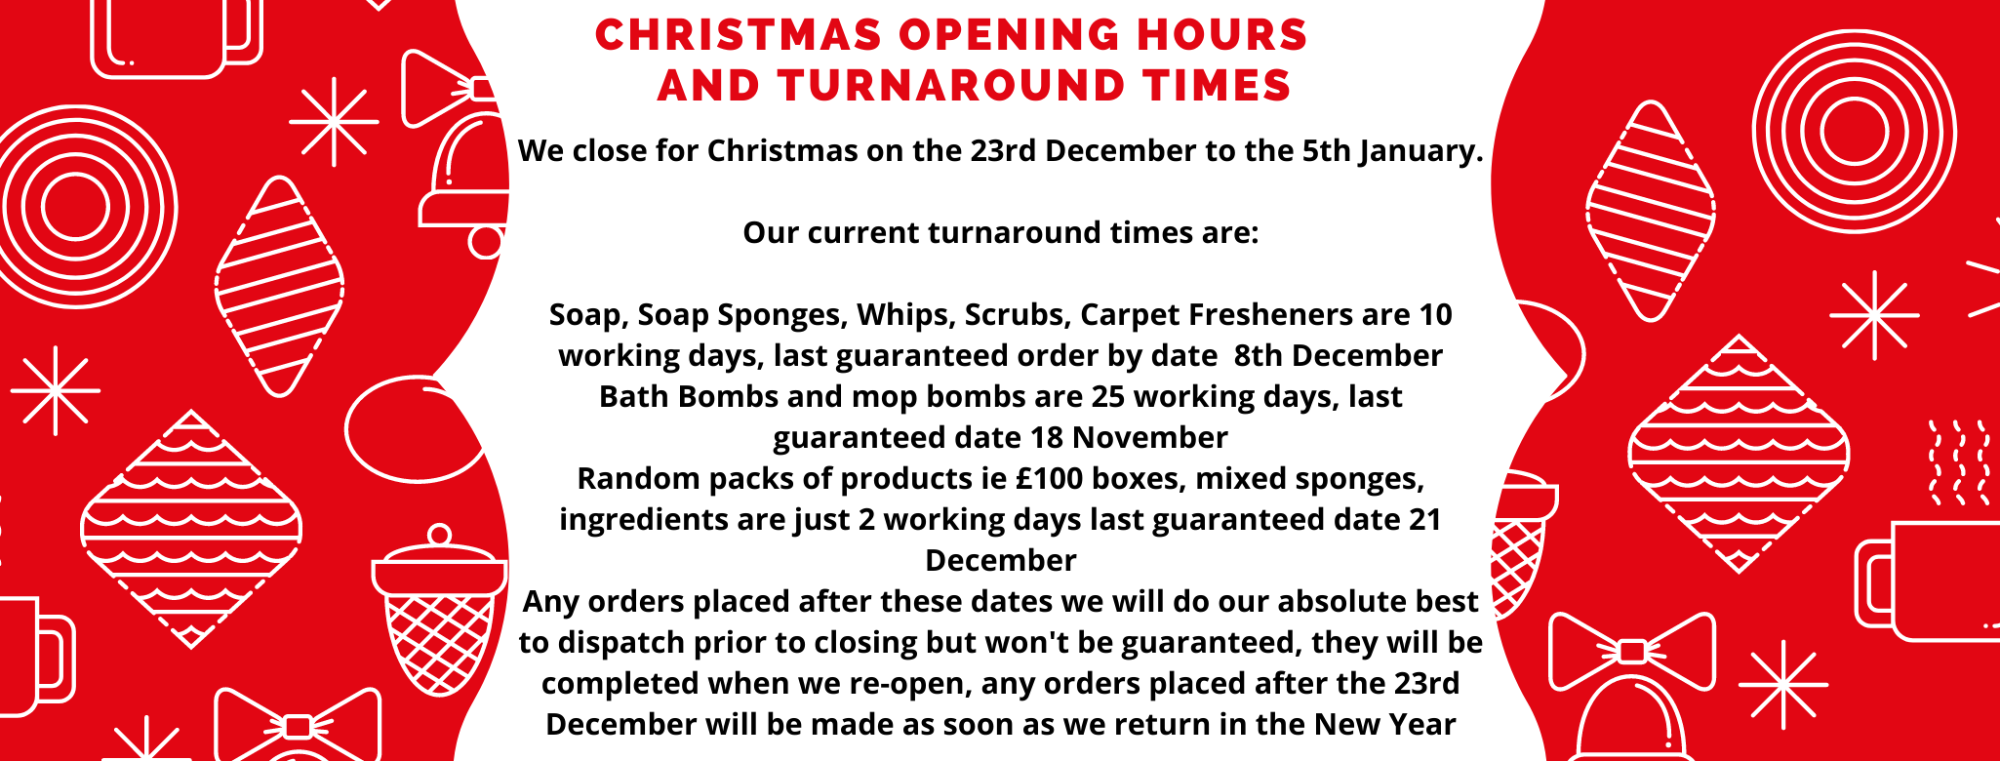 CHRISTMAS OPENING HOURS AND TURNAROUND TIMES